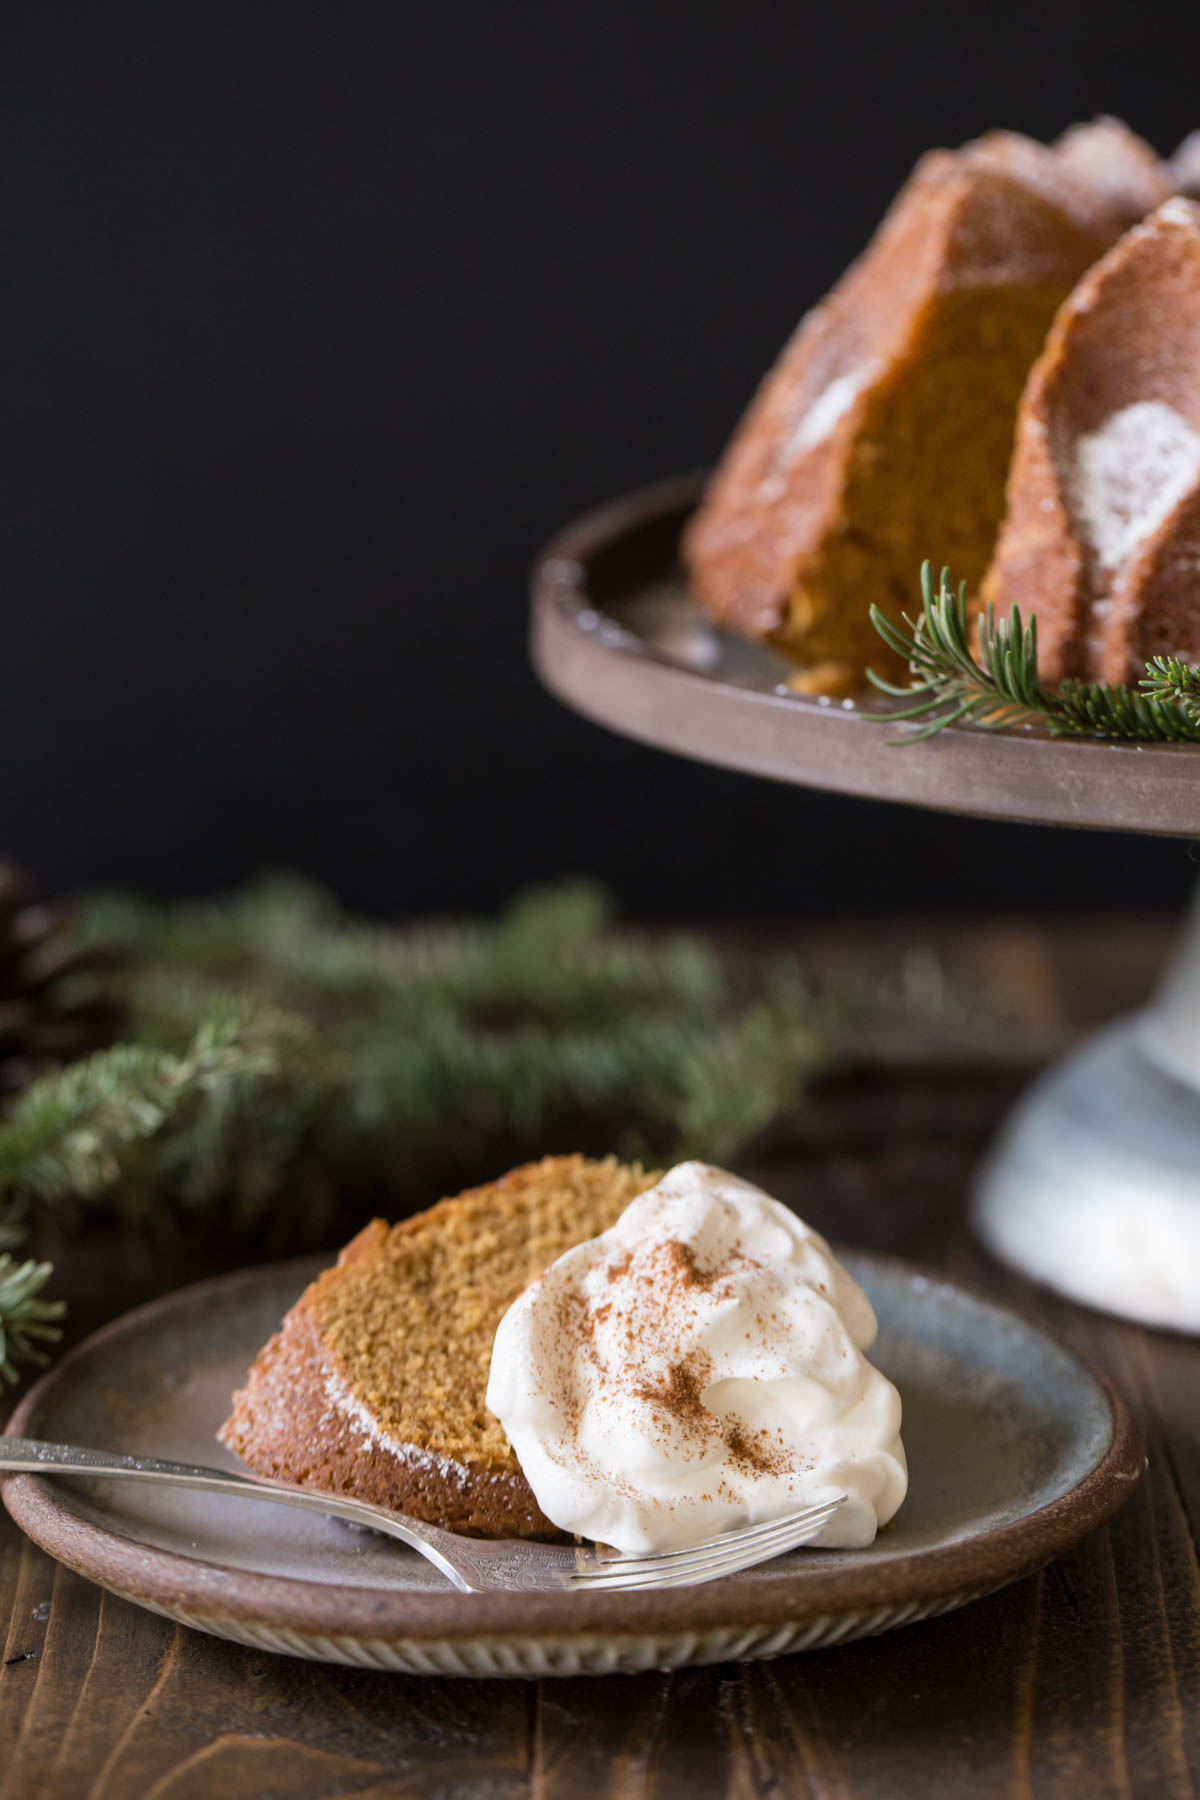 A slice of Gingerbread Bundt Cake on a plate, topped with whipped cream, sitting next to the rest of the Gingerbread Bundt Cake on a cake stand.